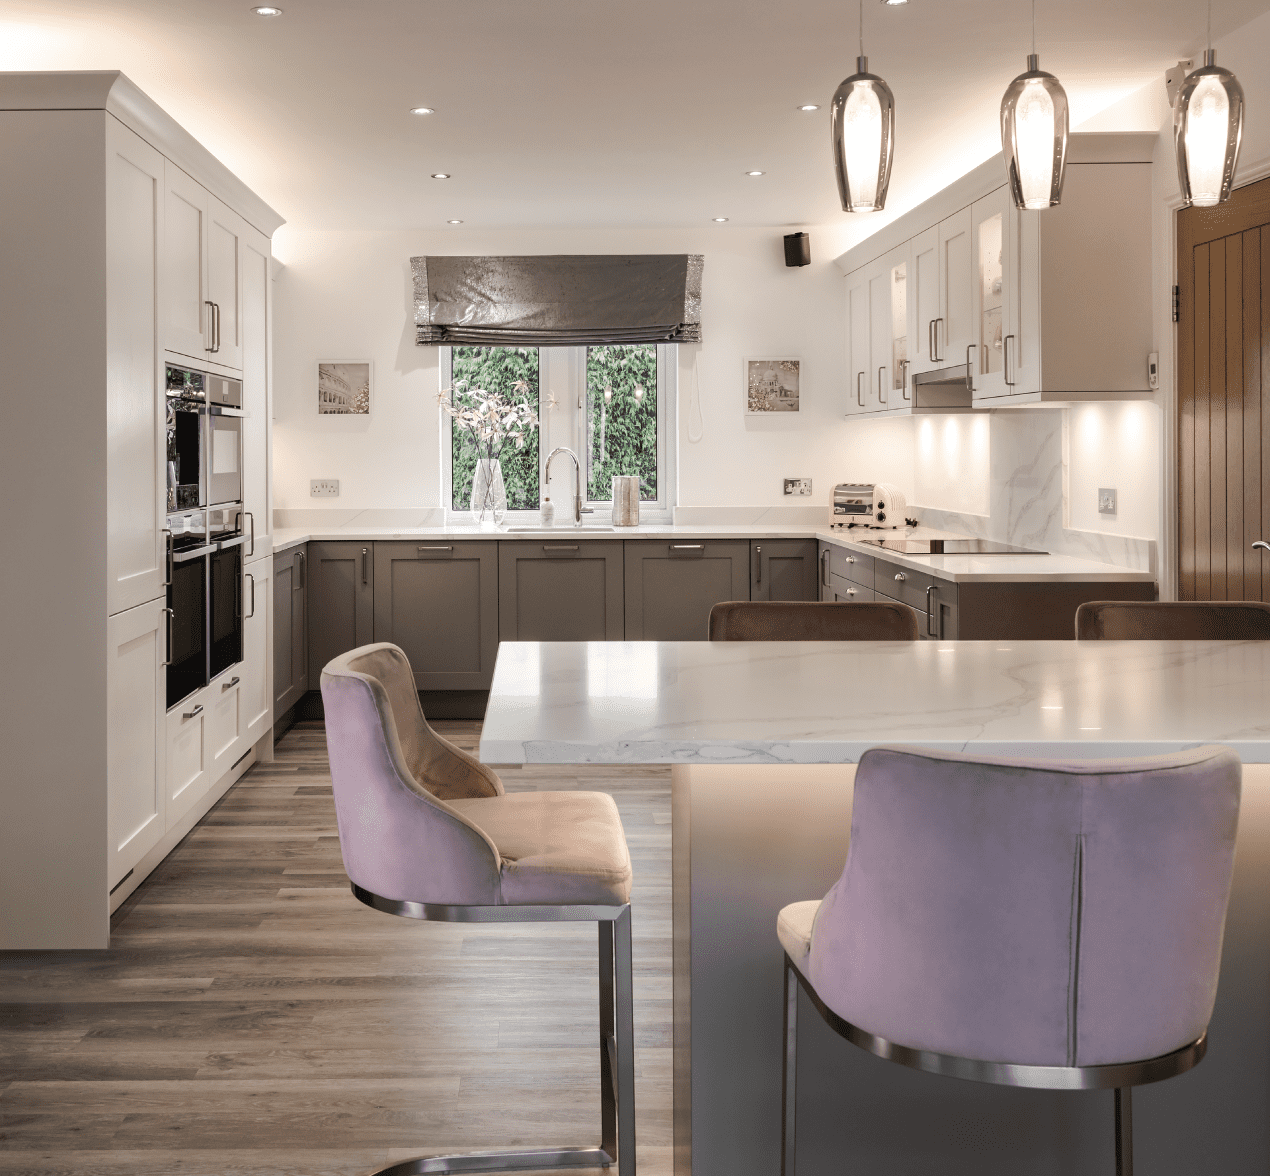 A second Kitchen Design Centre Kitchen …20 years after the first!